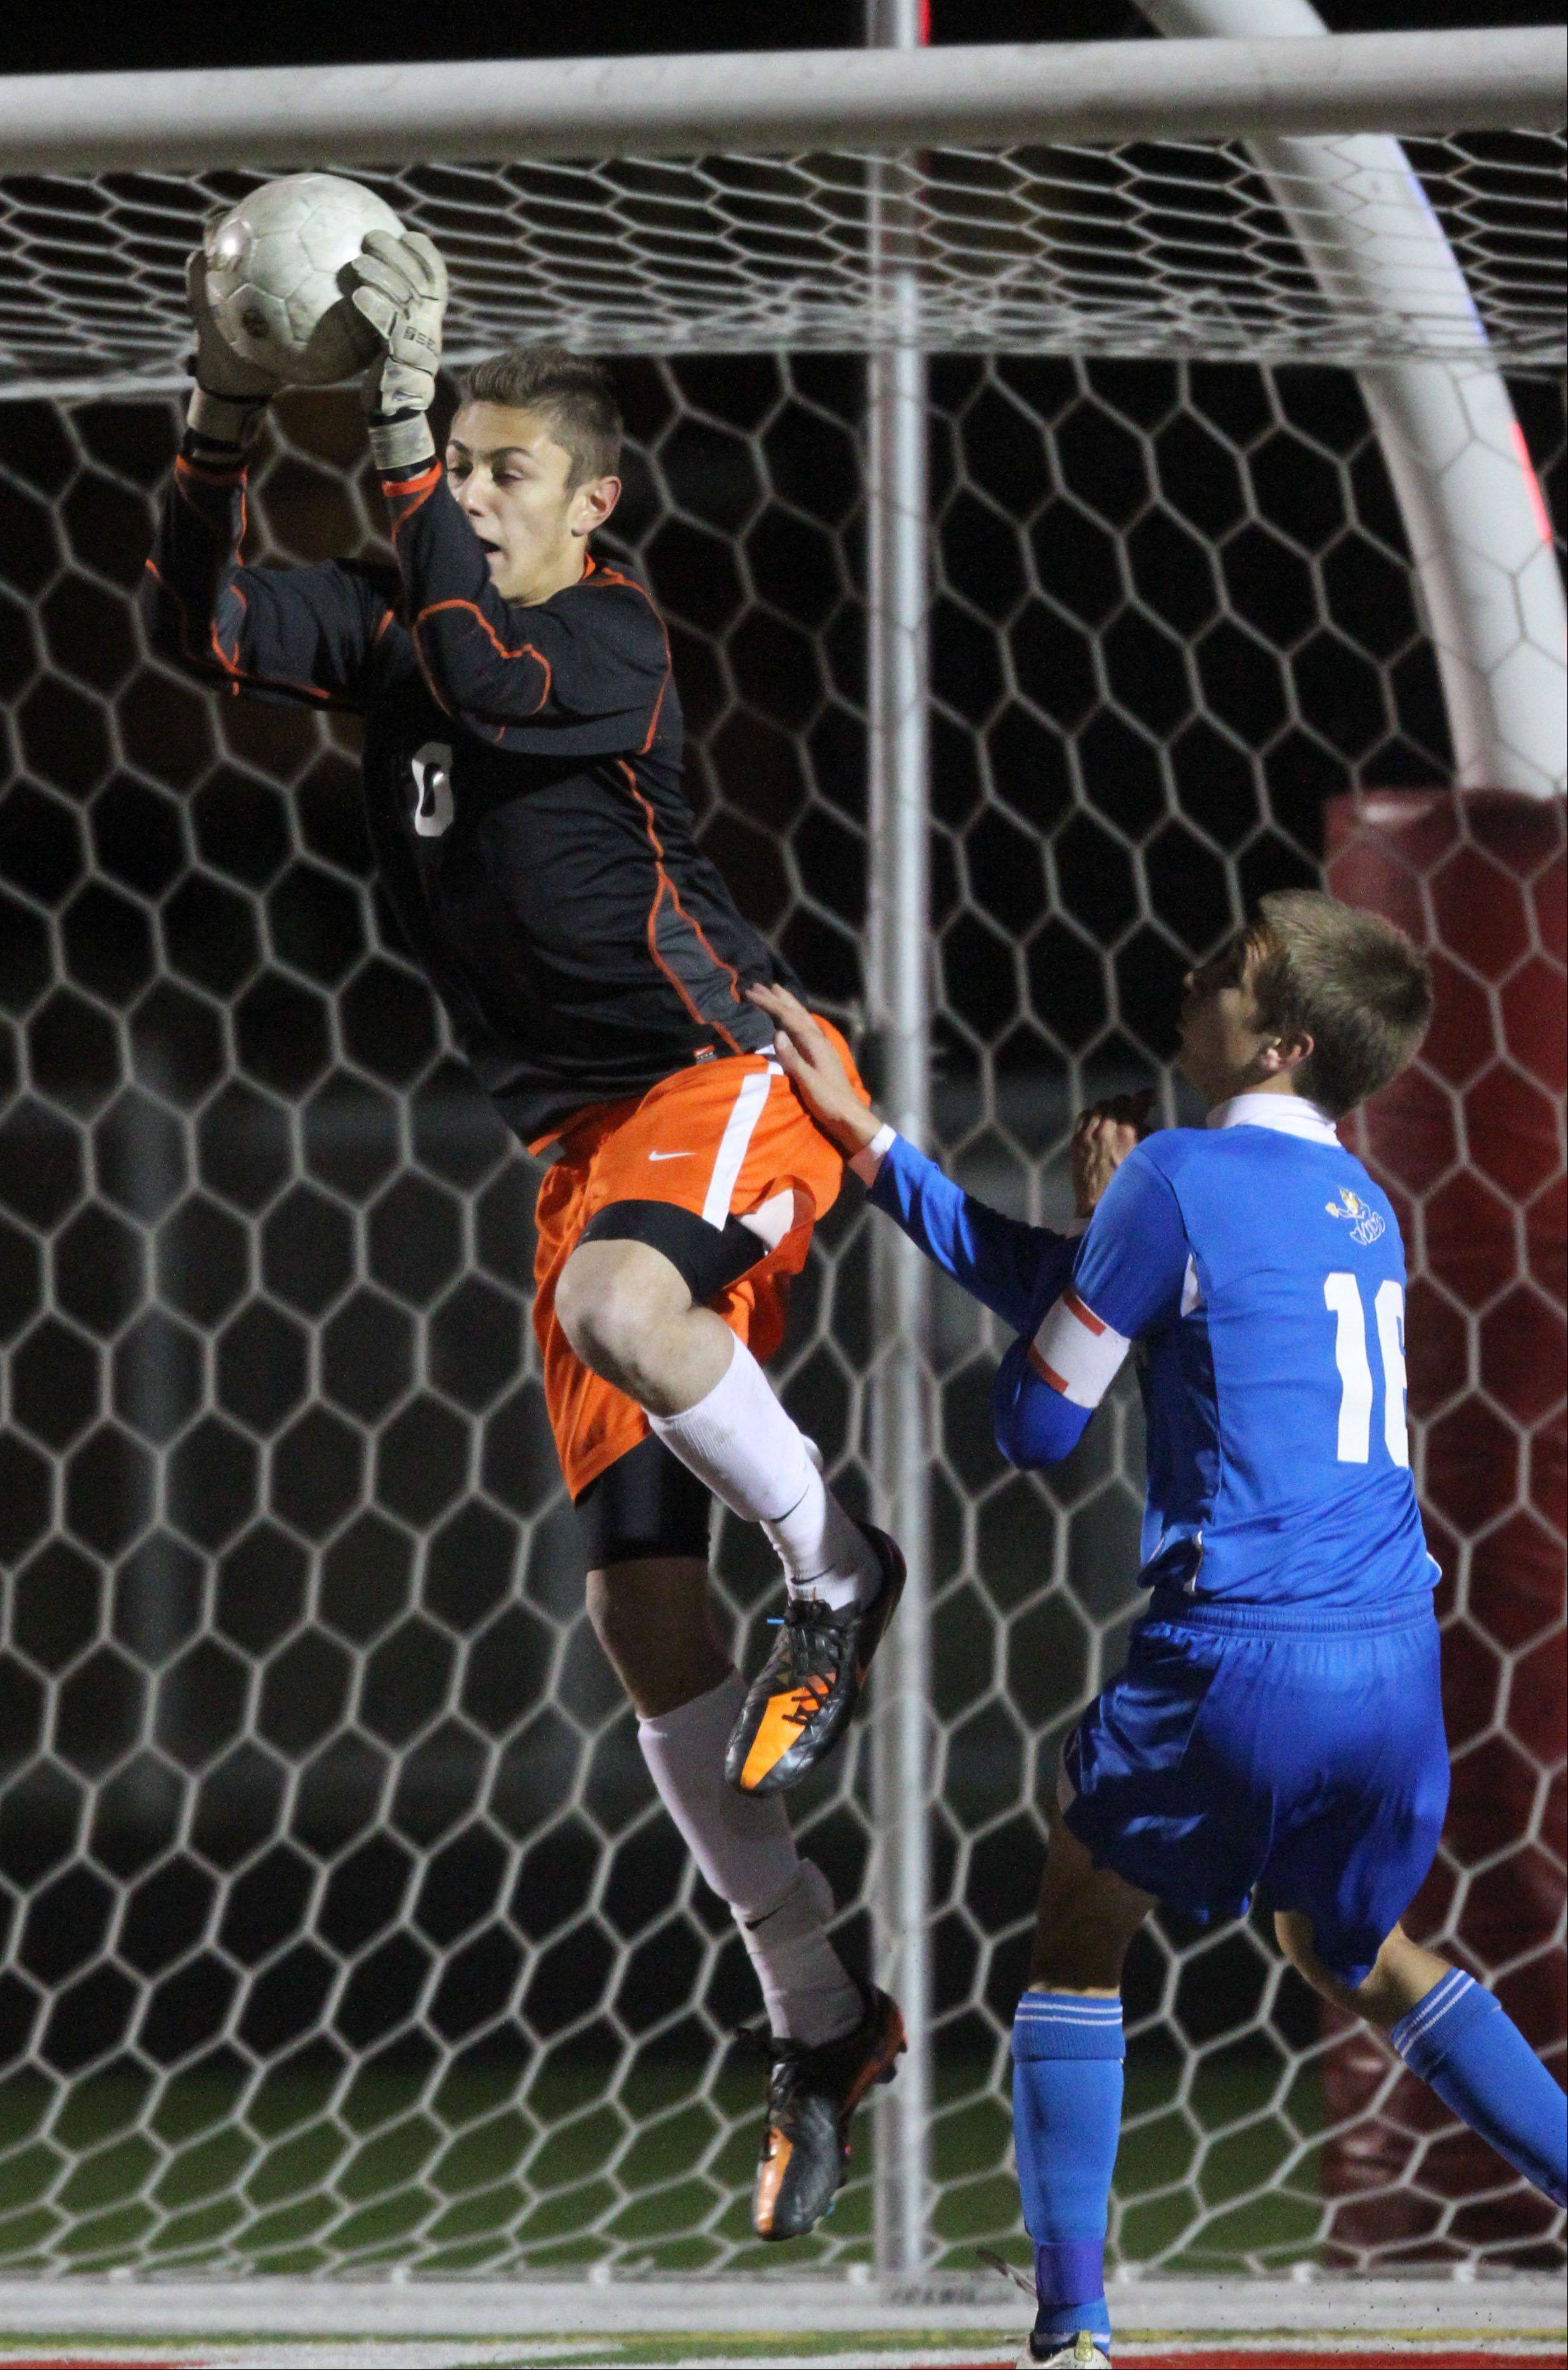 St. Charles East's Chris Locatorto pulls down the bal with Warren's Timmy Pieper pressuring during super sectional soccer action Tuesday night at Barrington High School.